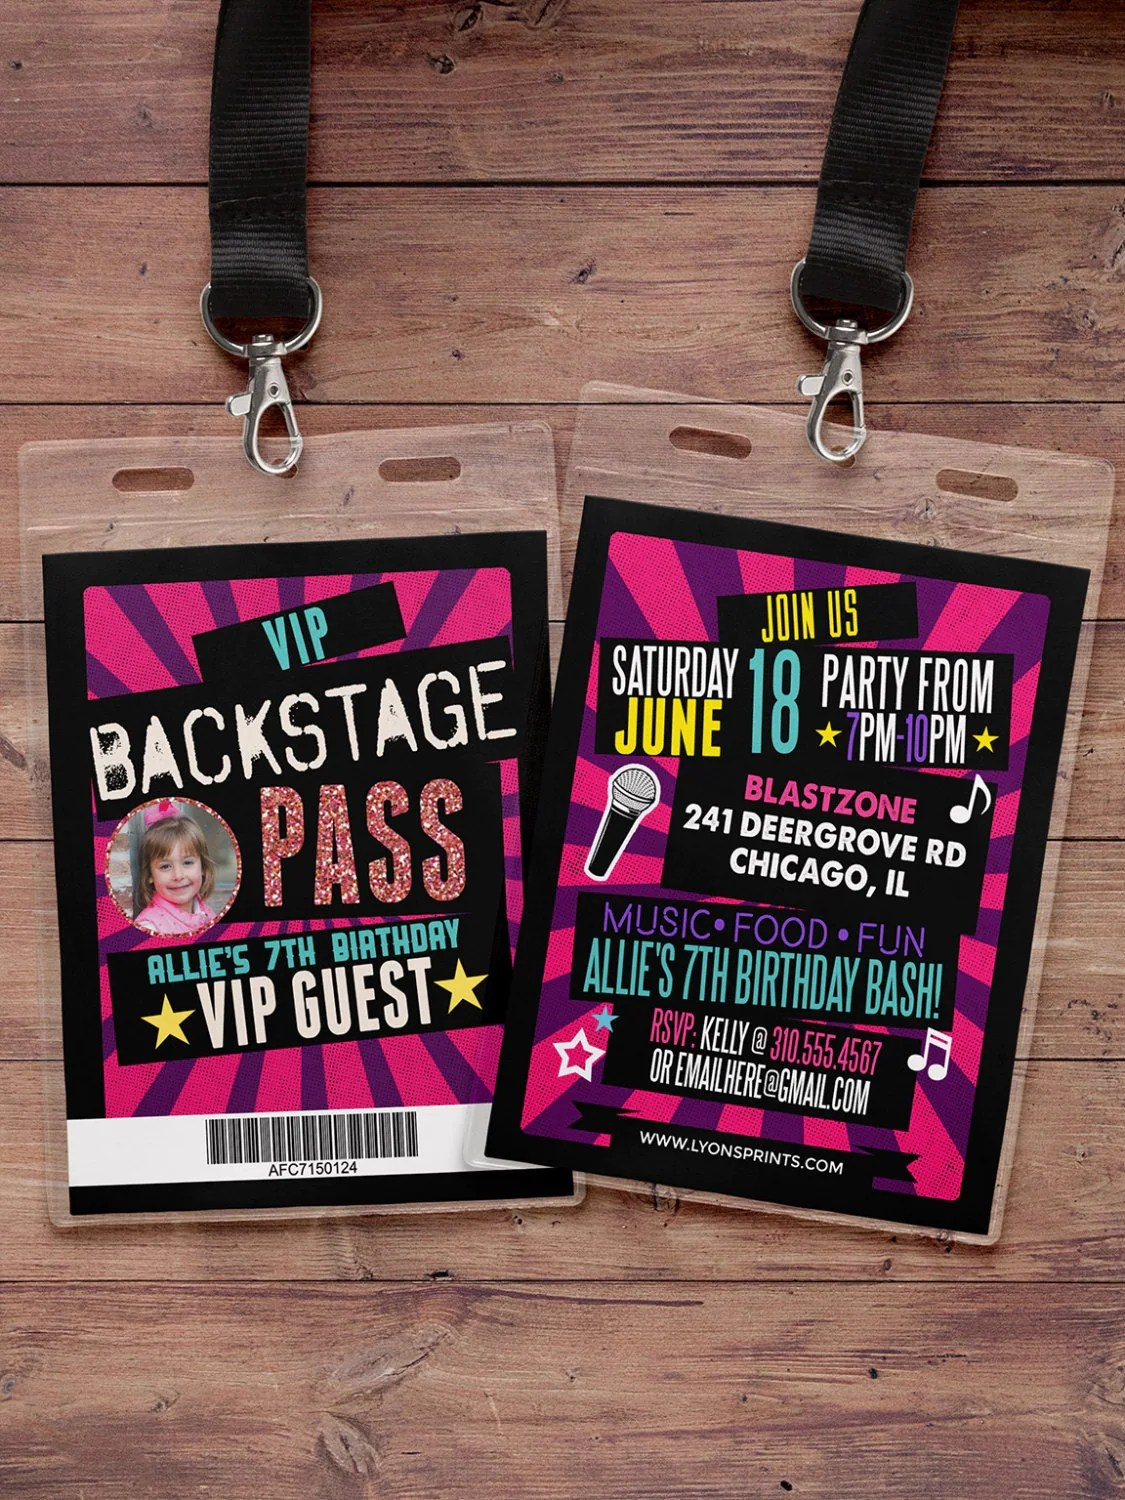 birthday invitation rock star VIP PASS backstage pass